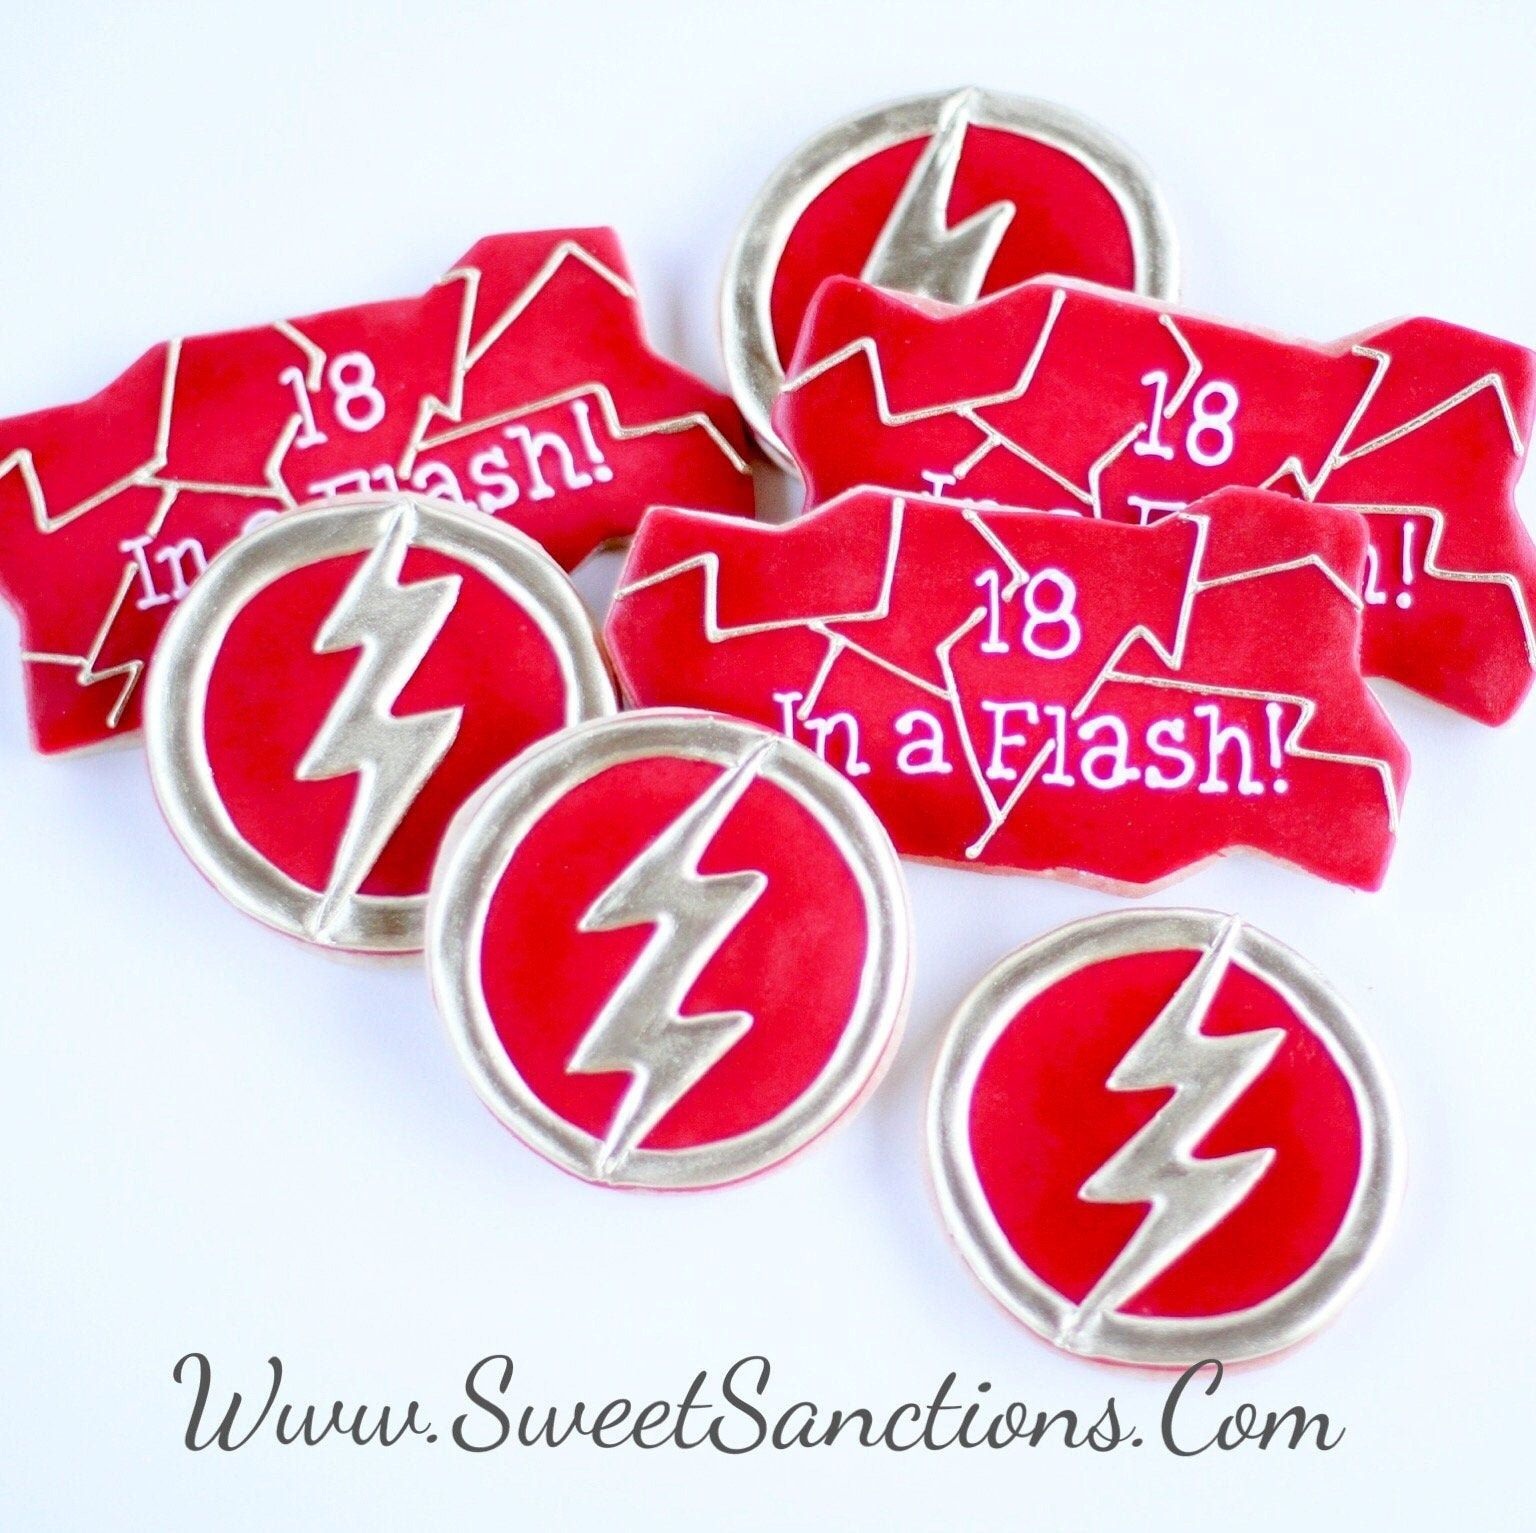 Pin On Etsy Sweet Sanctions